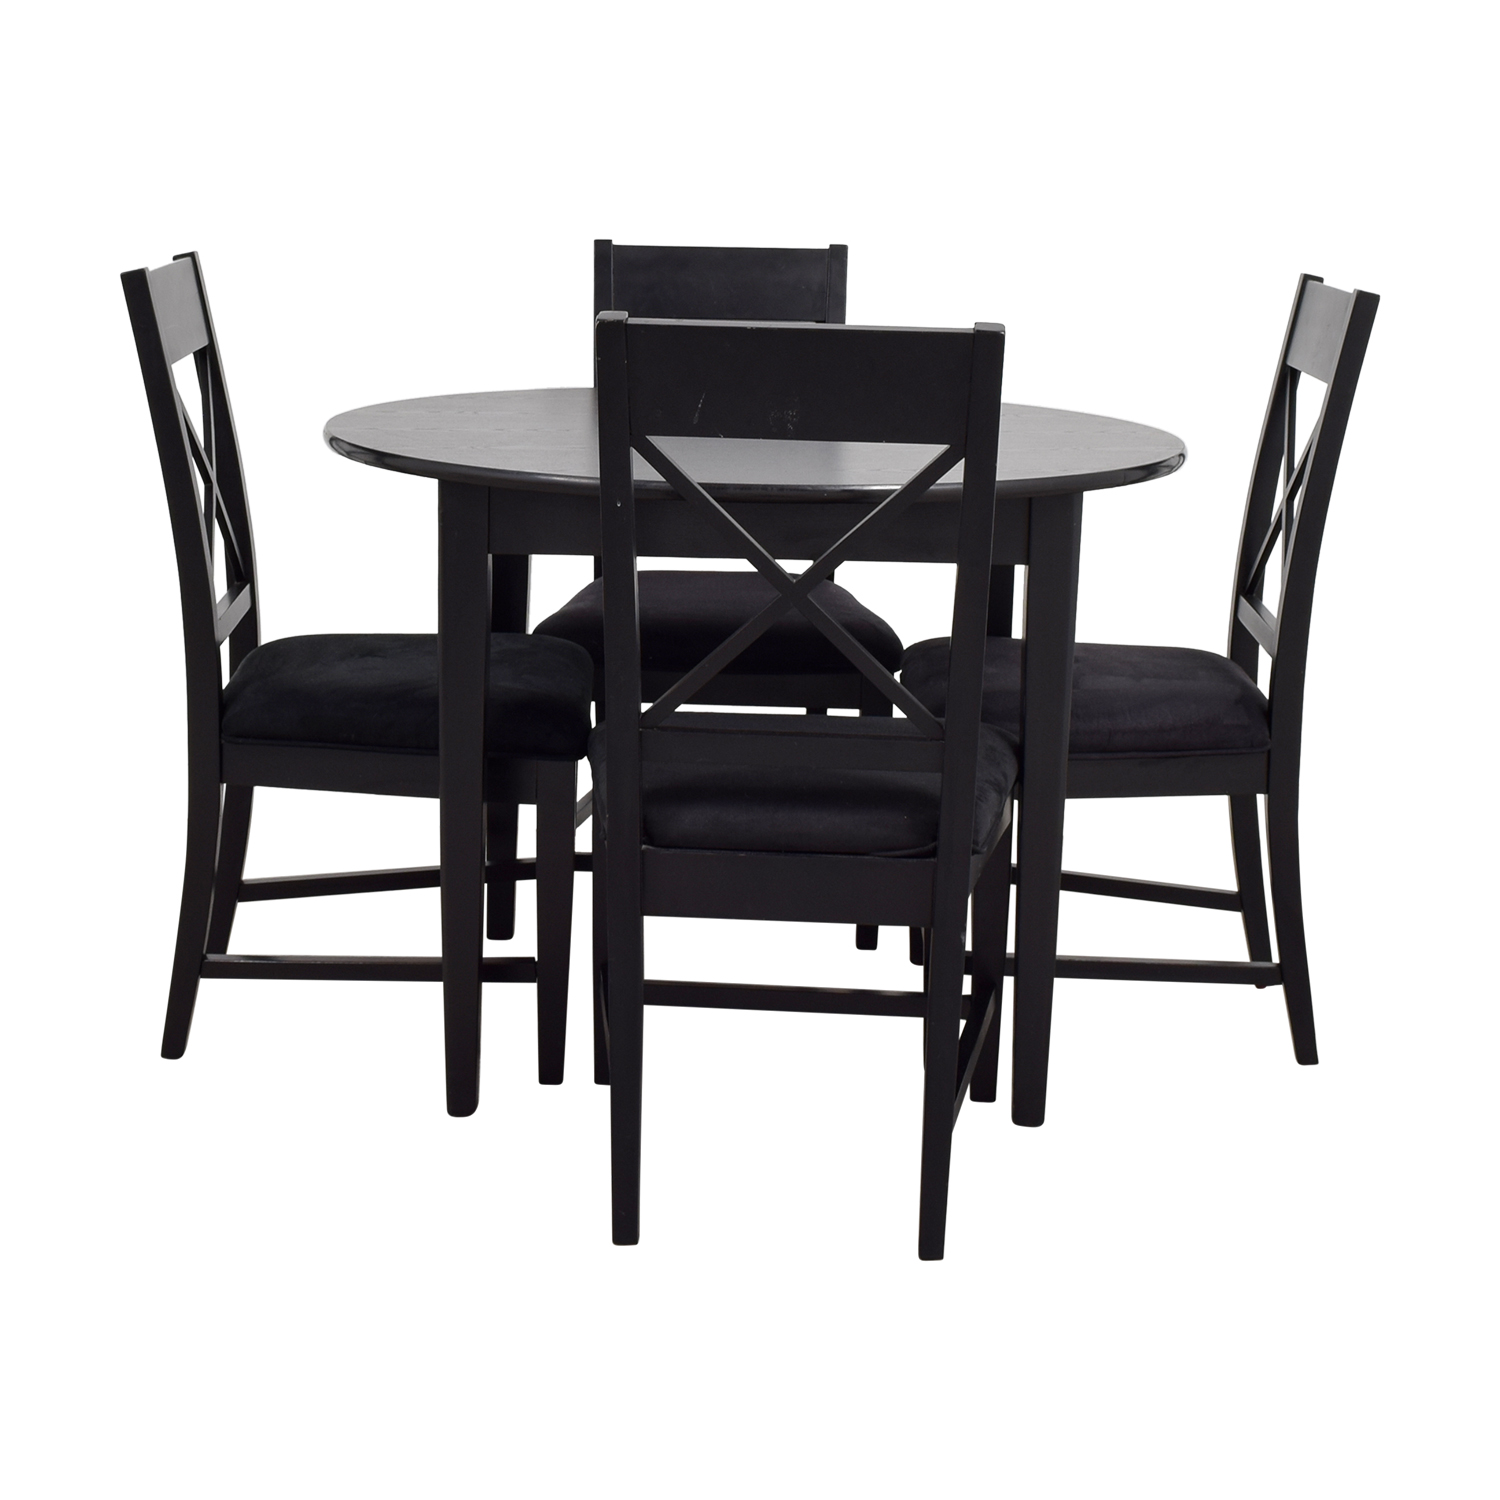 79 off round black wood dining set tables for Black dining table set